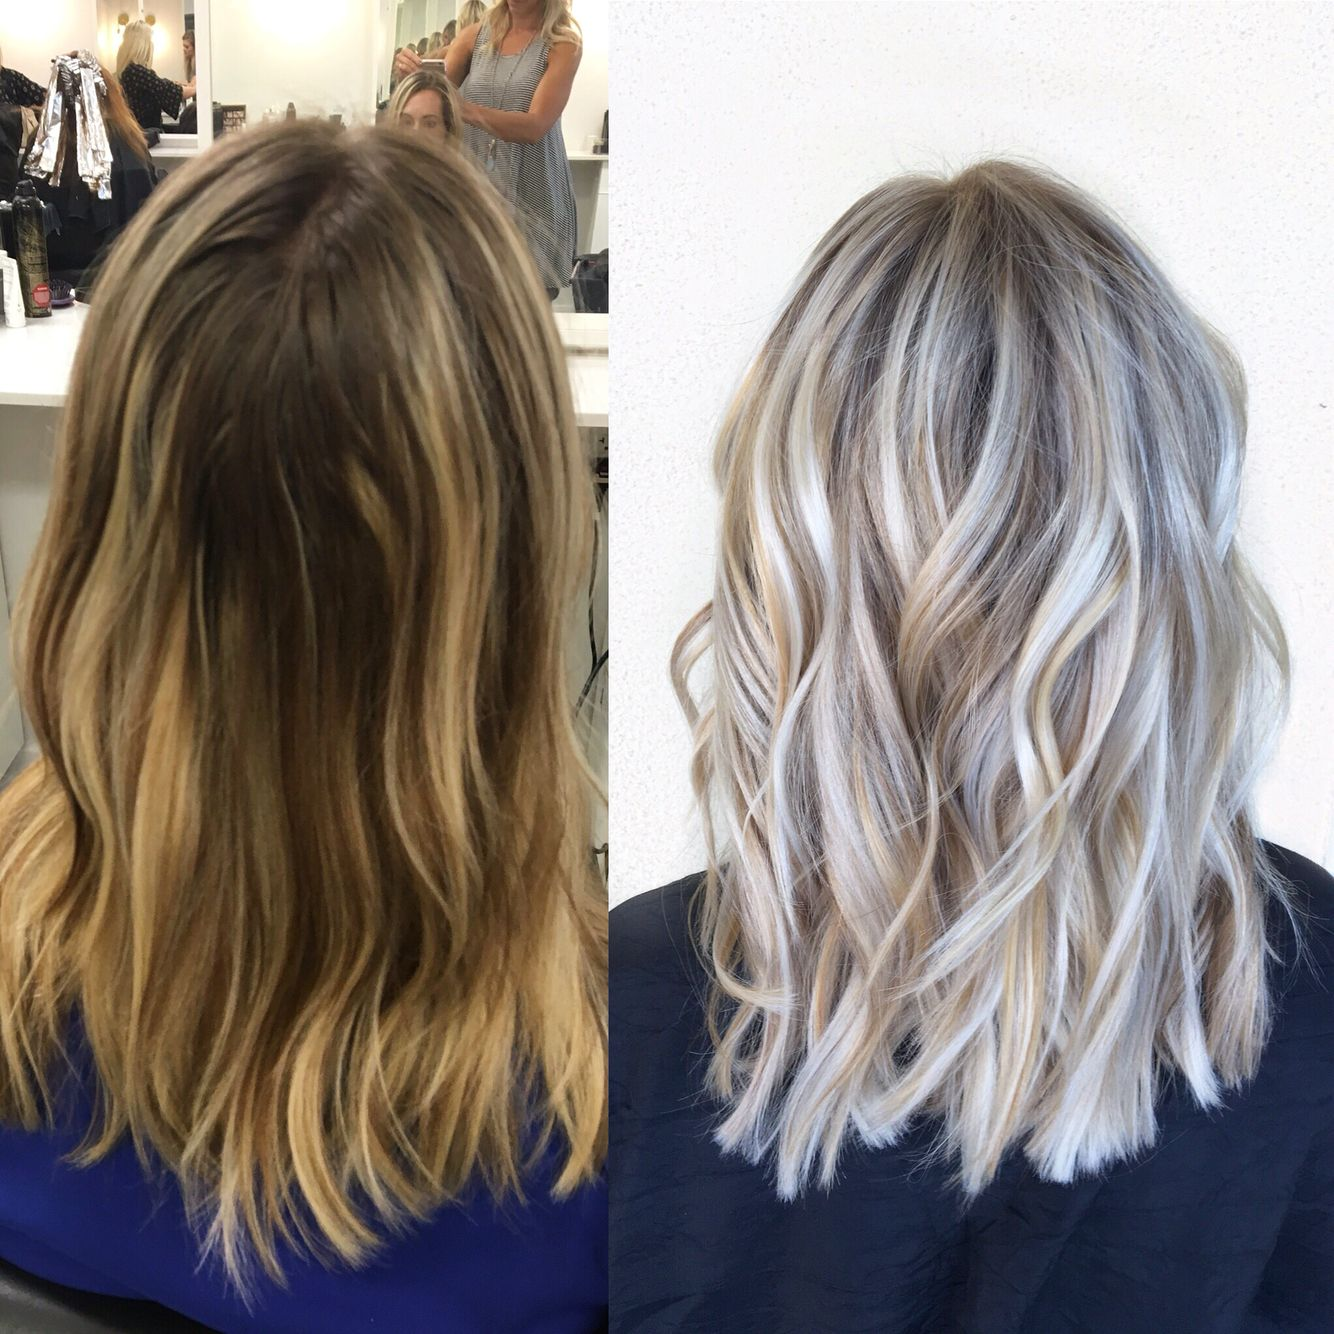 Done by alexaa at habit salon in gilbert az ash blonde cool